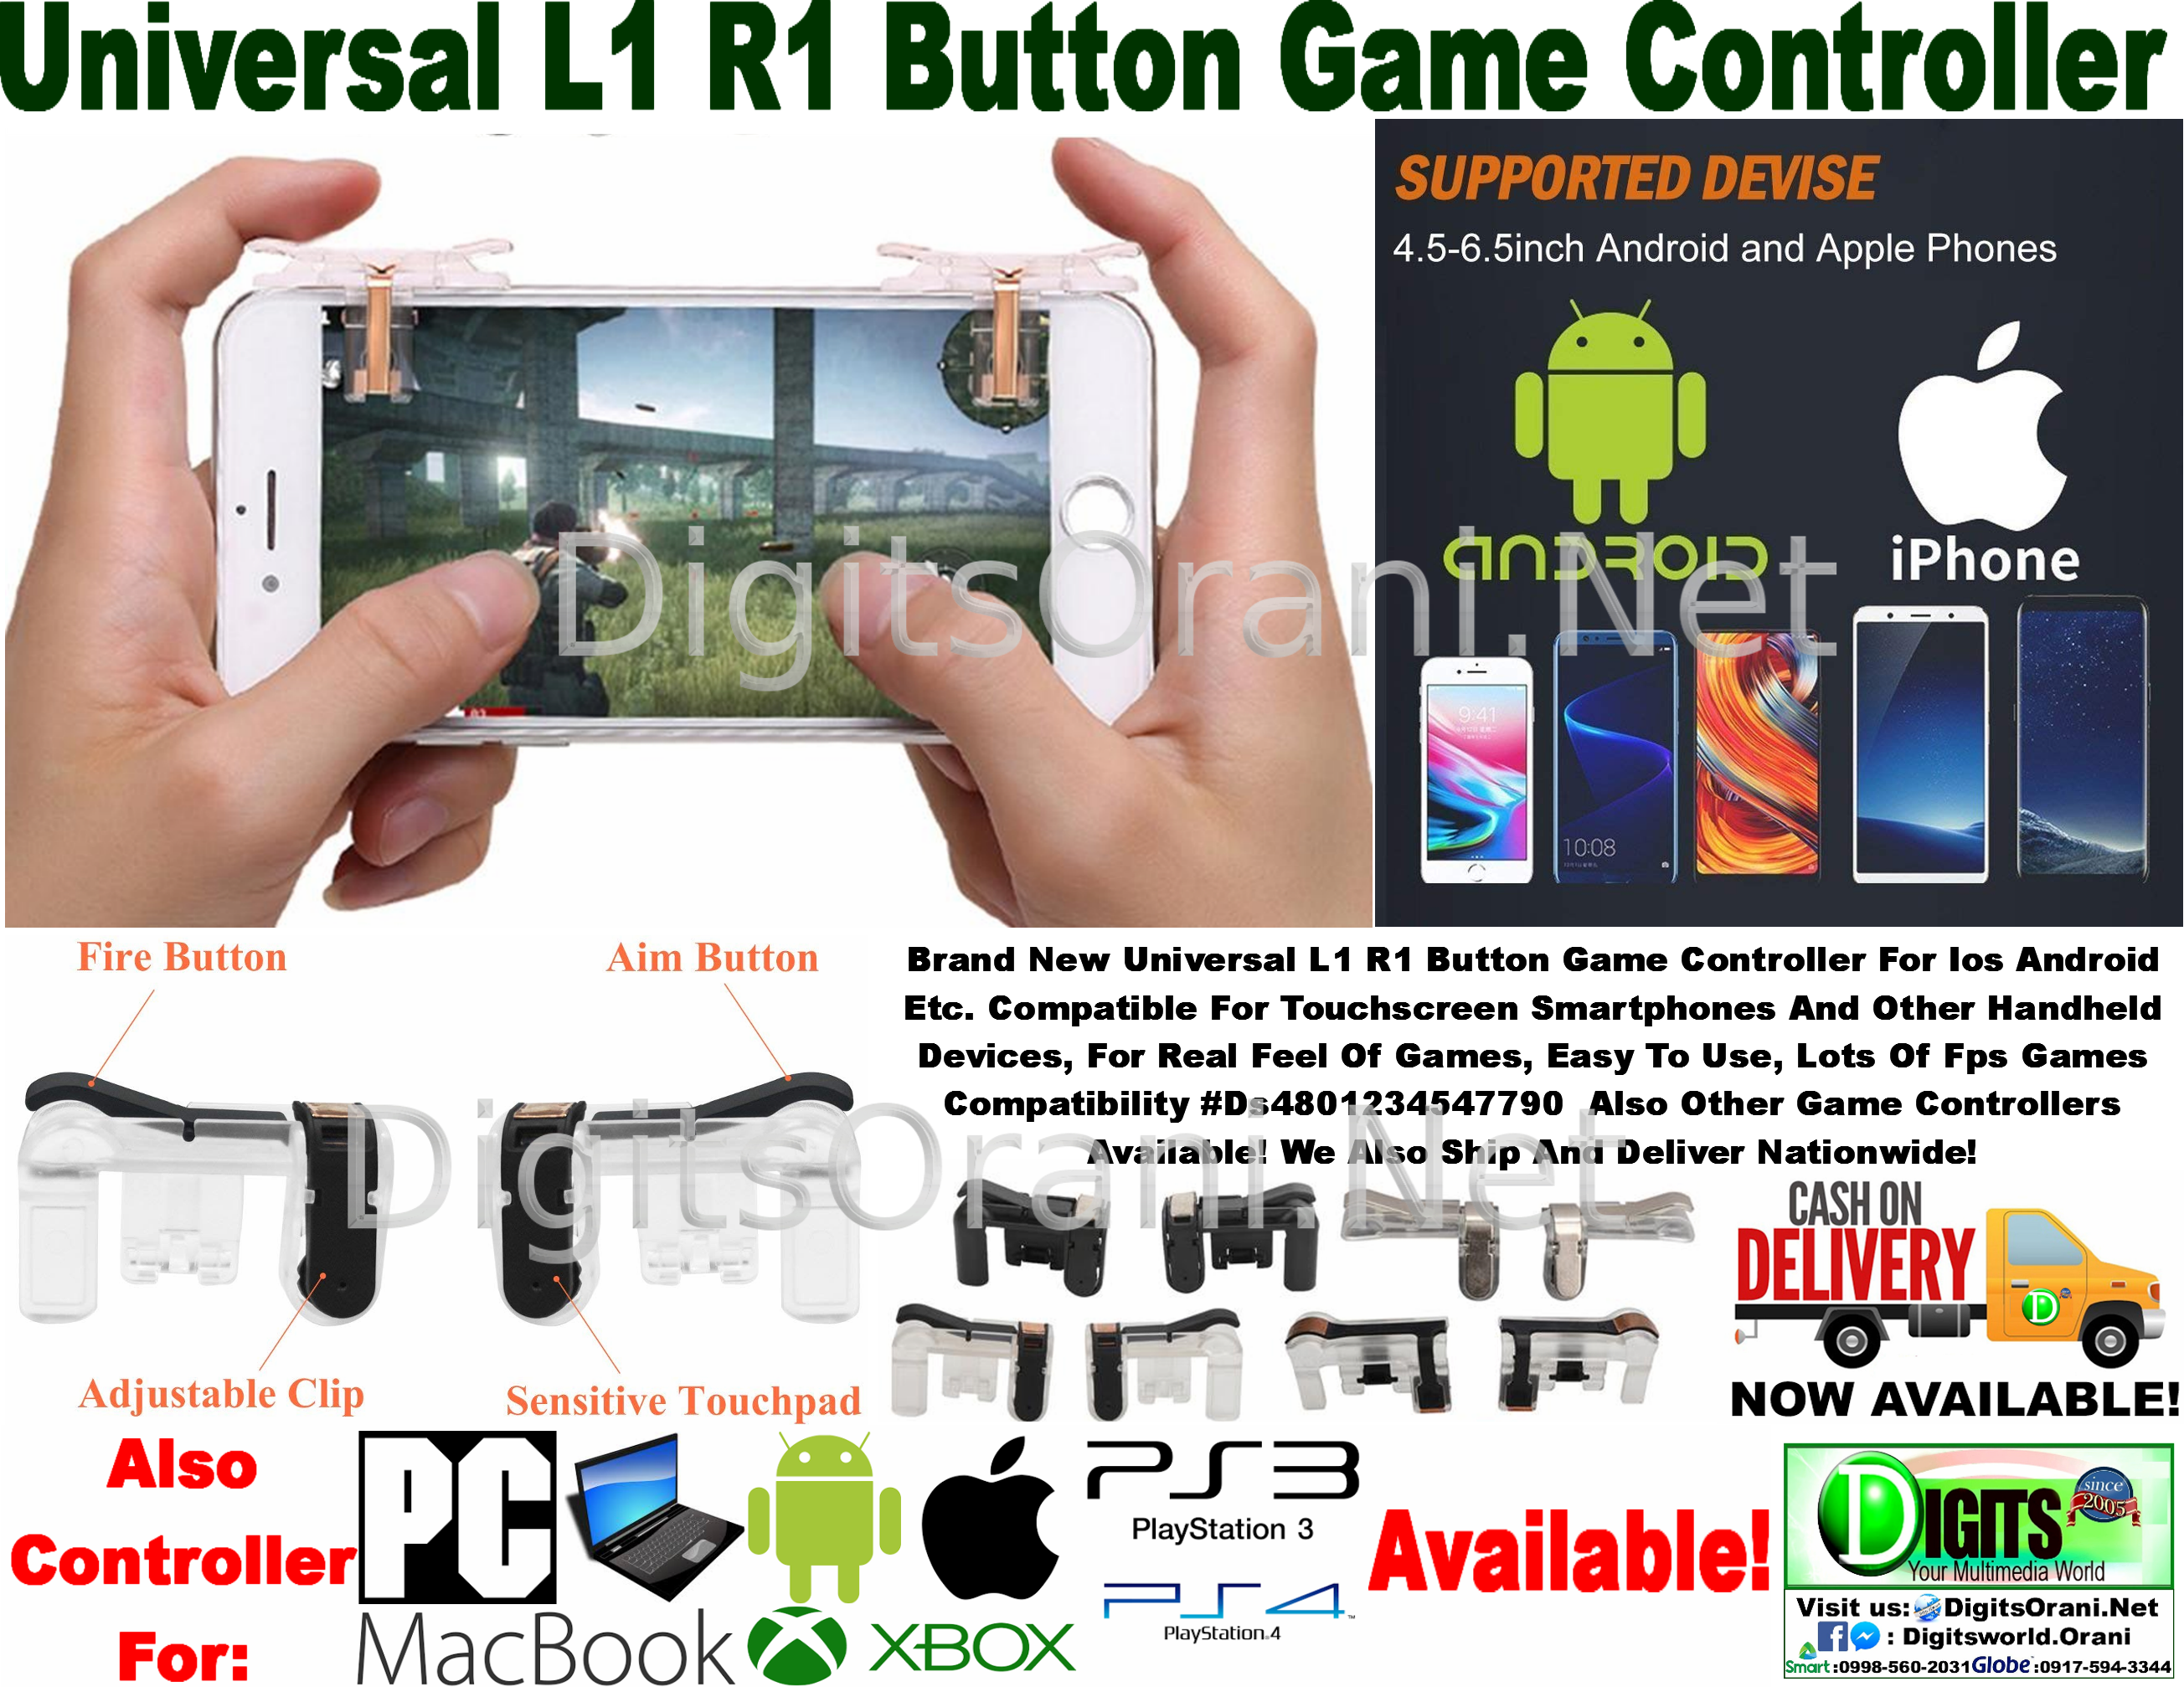 Universal L1 R1 Button Game Controller For Ios Android Etc  Compatible For  Touchscreen Smartphones And Other Handheld Devices, For Real Feel Of Games,